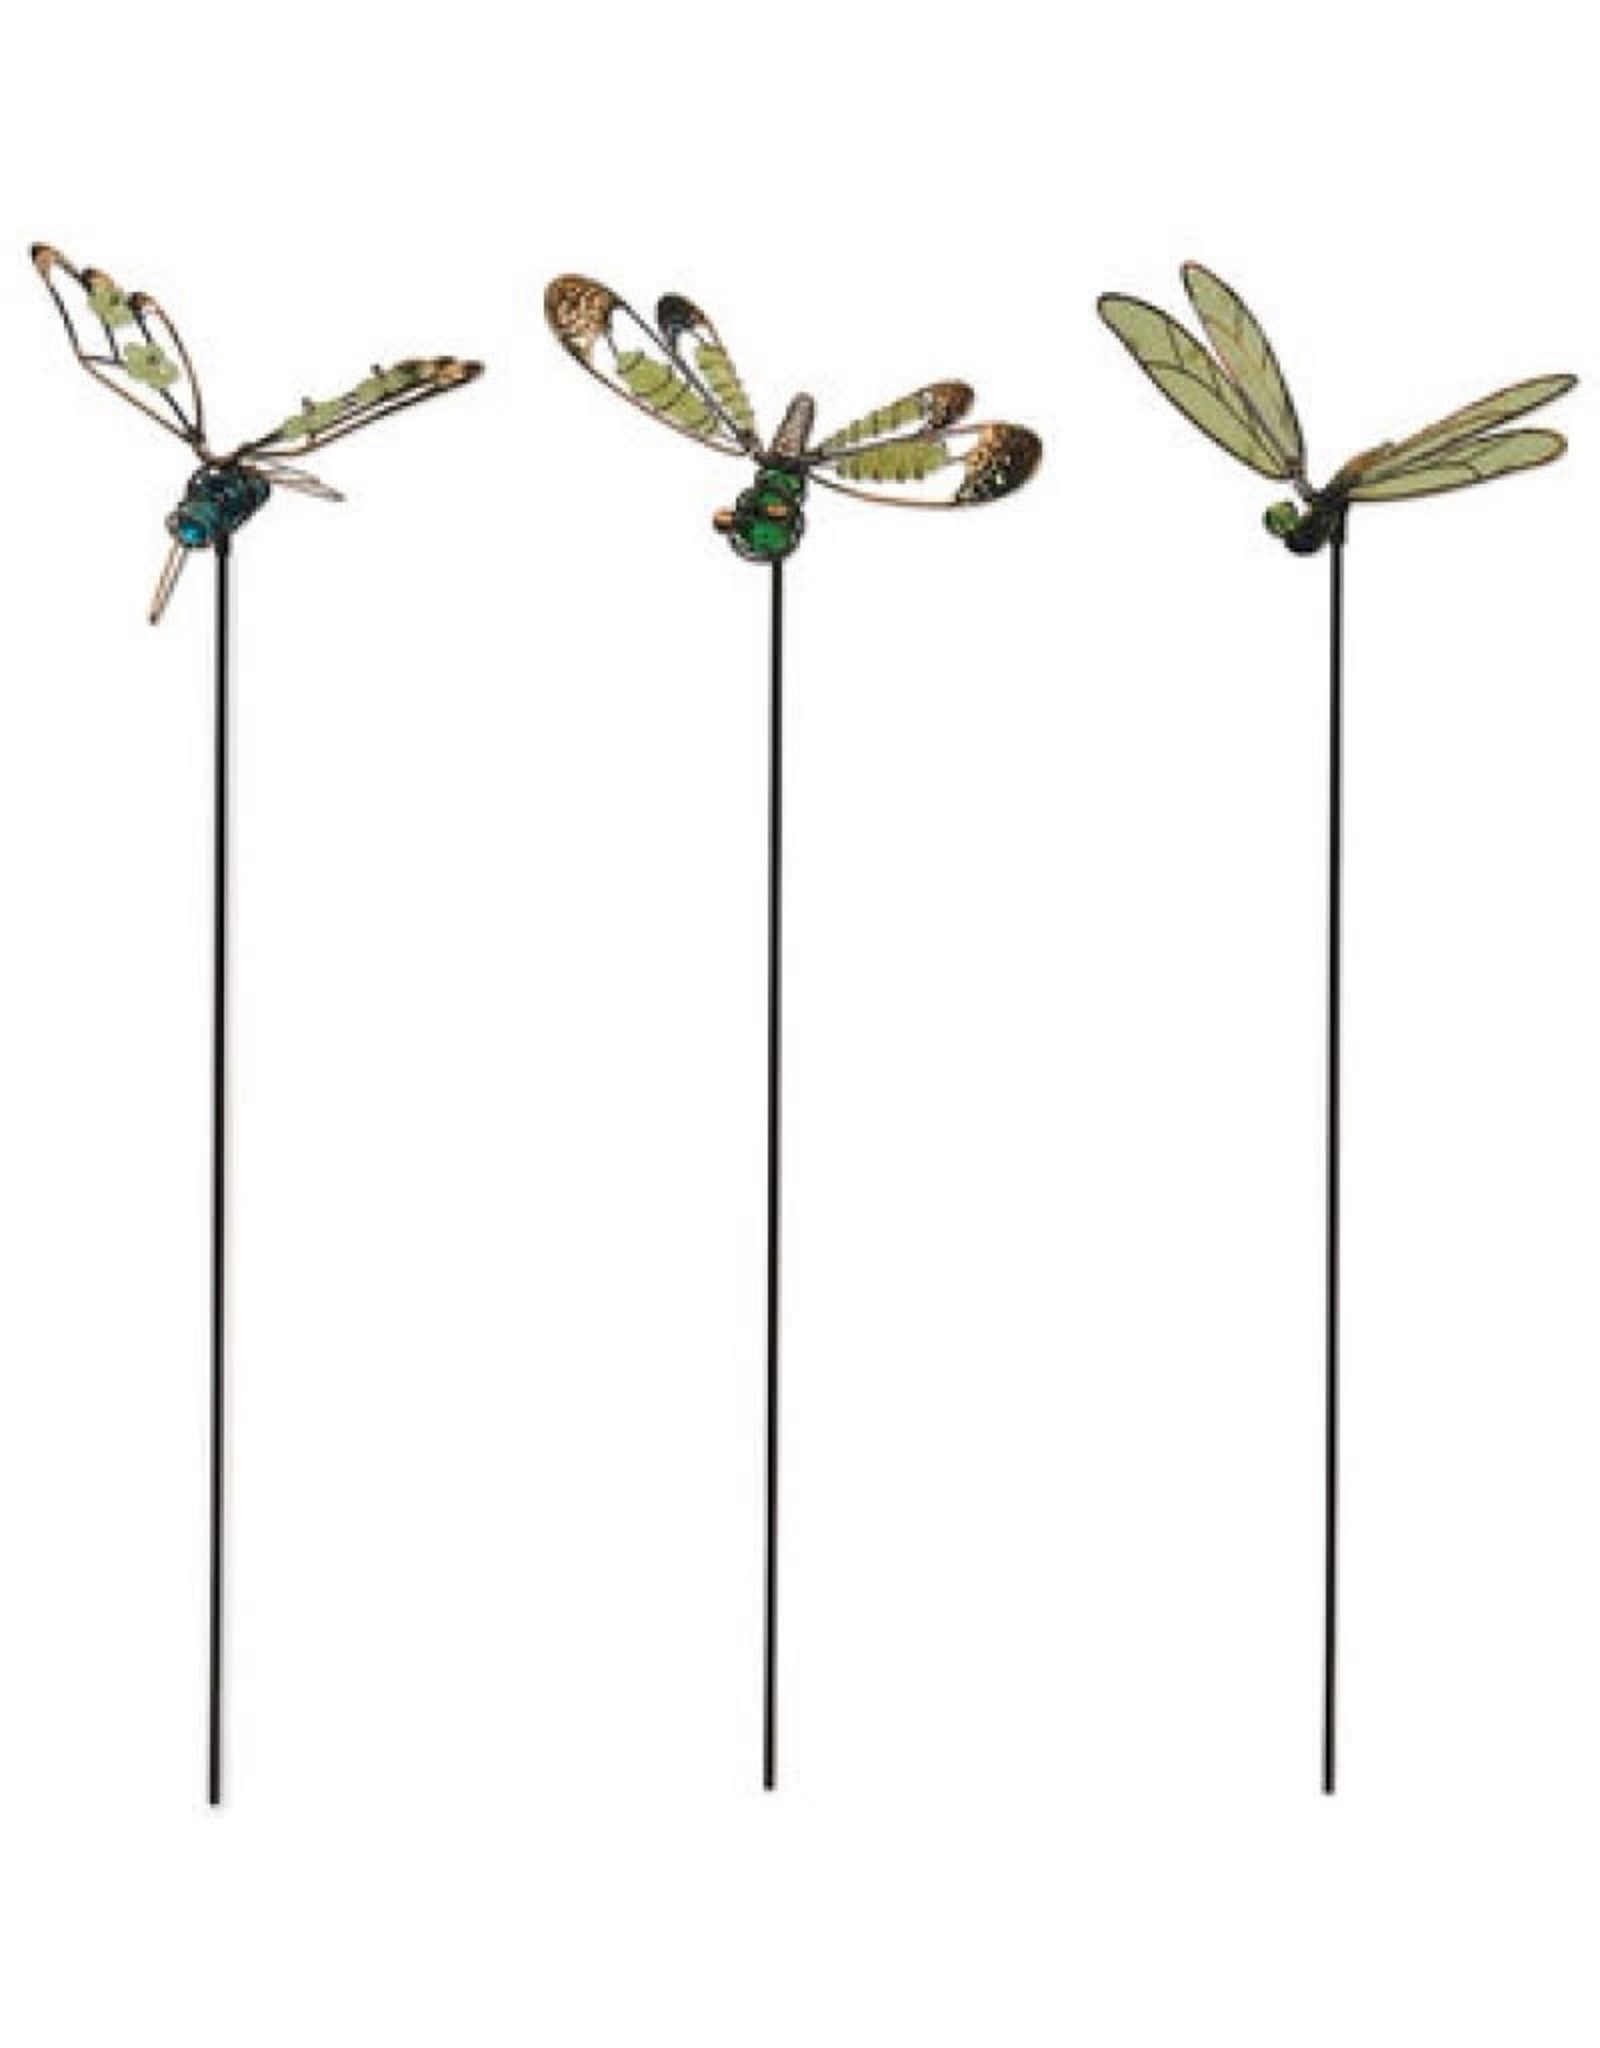 Glow in the Dark Dragonfly Stakes - Set of 3